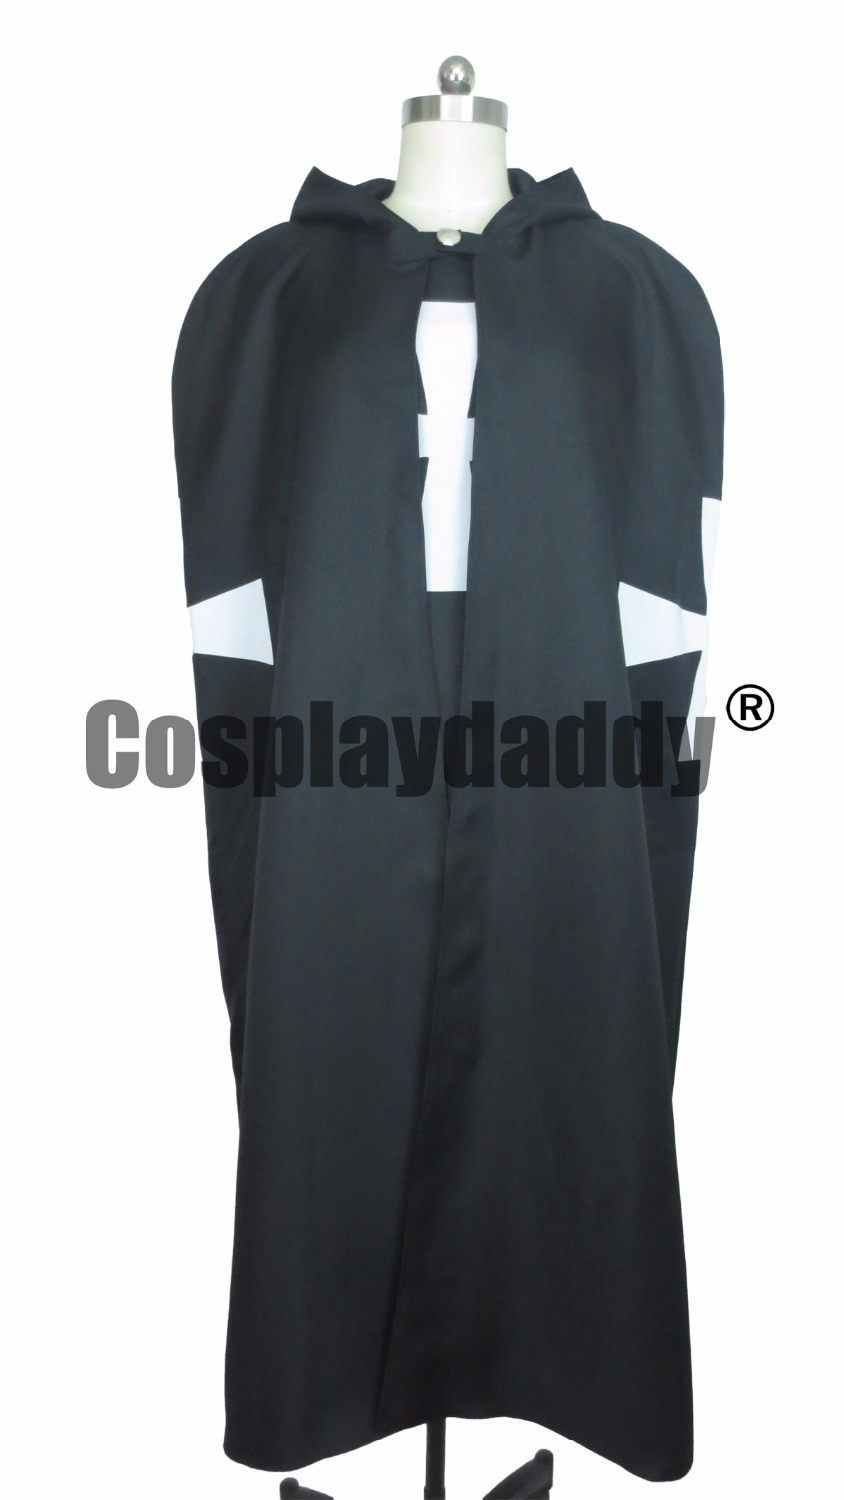 Knights Hospitaller Tunic Cloak Cape Crusaders Gothic Cross LARP Cosplay Costume